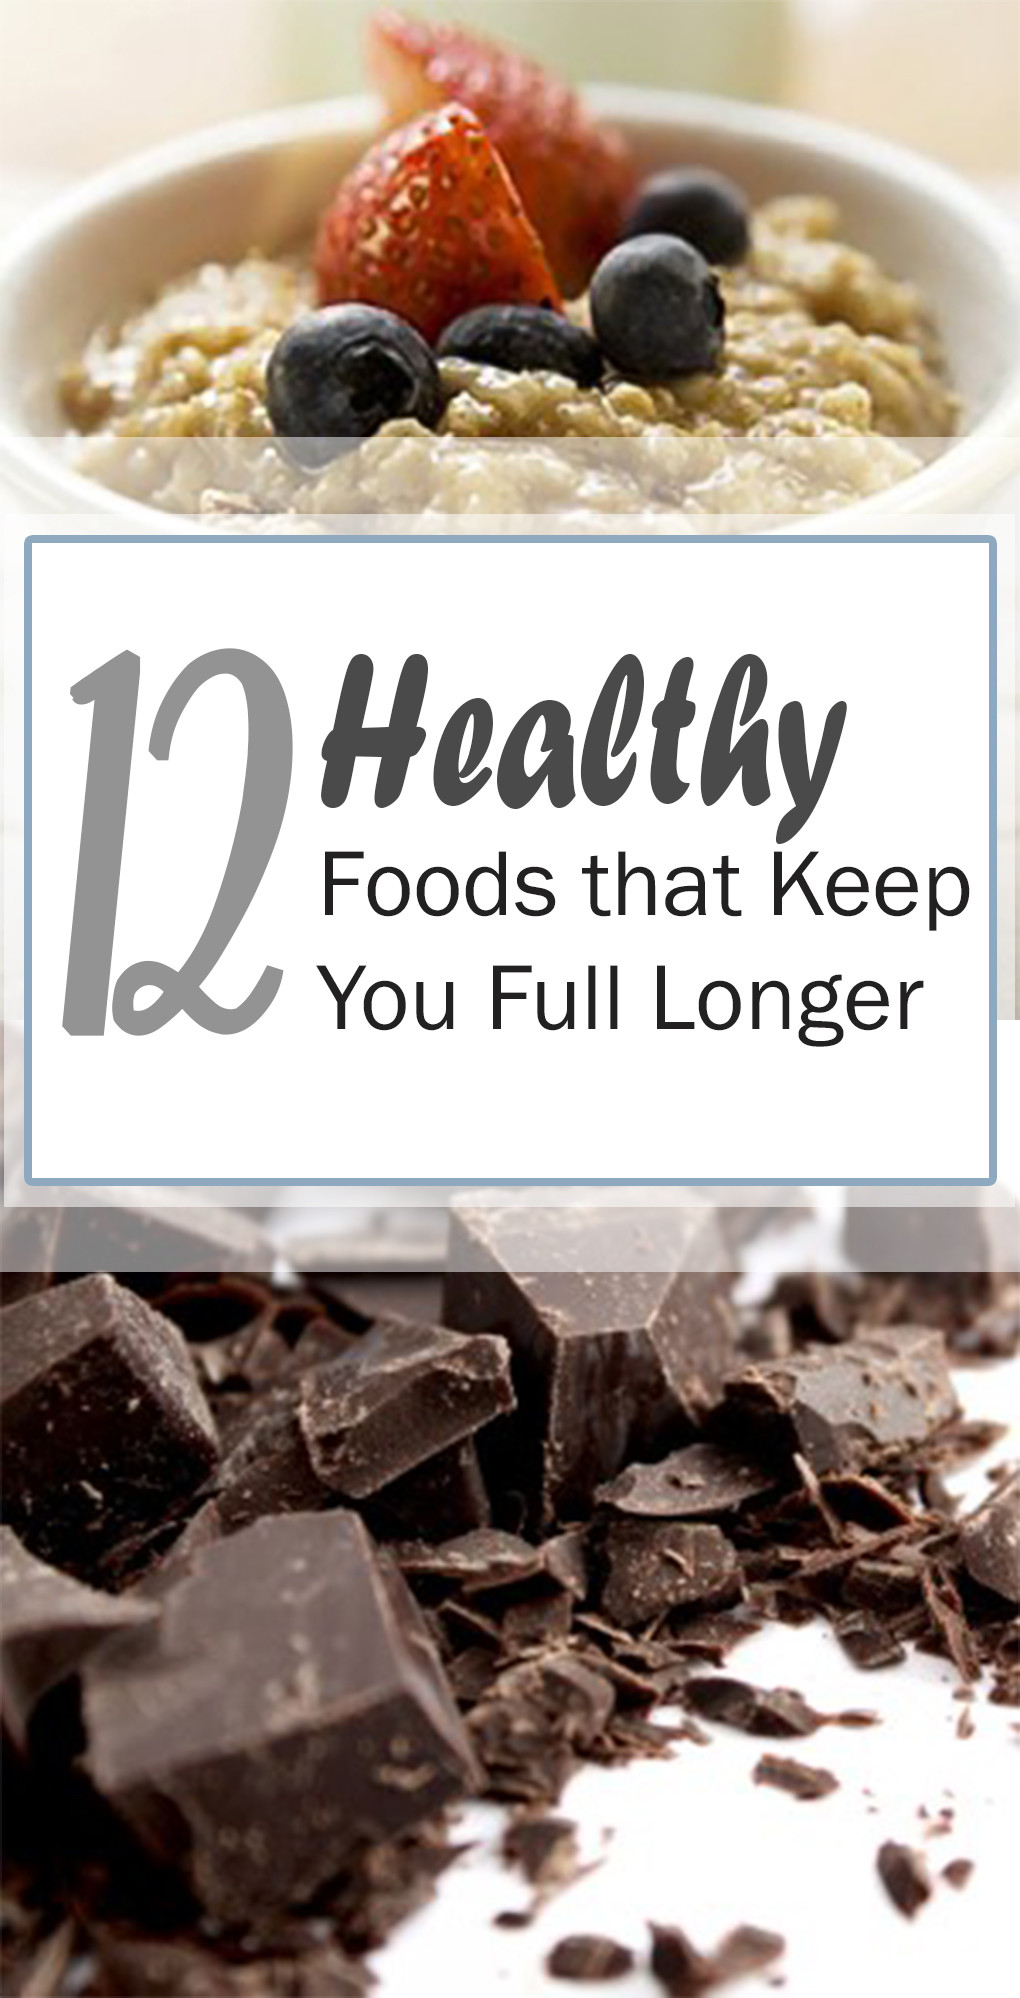 Healthy Snacks that Keep You Full Best 20 12 Healthy Foods that Keep You Full Longer